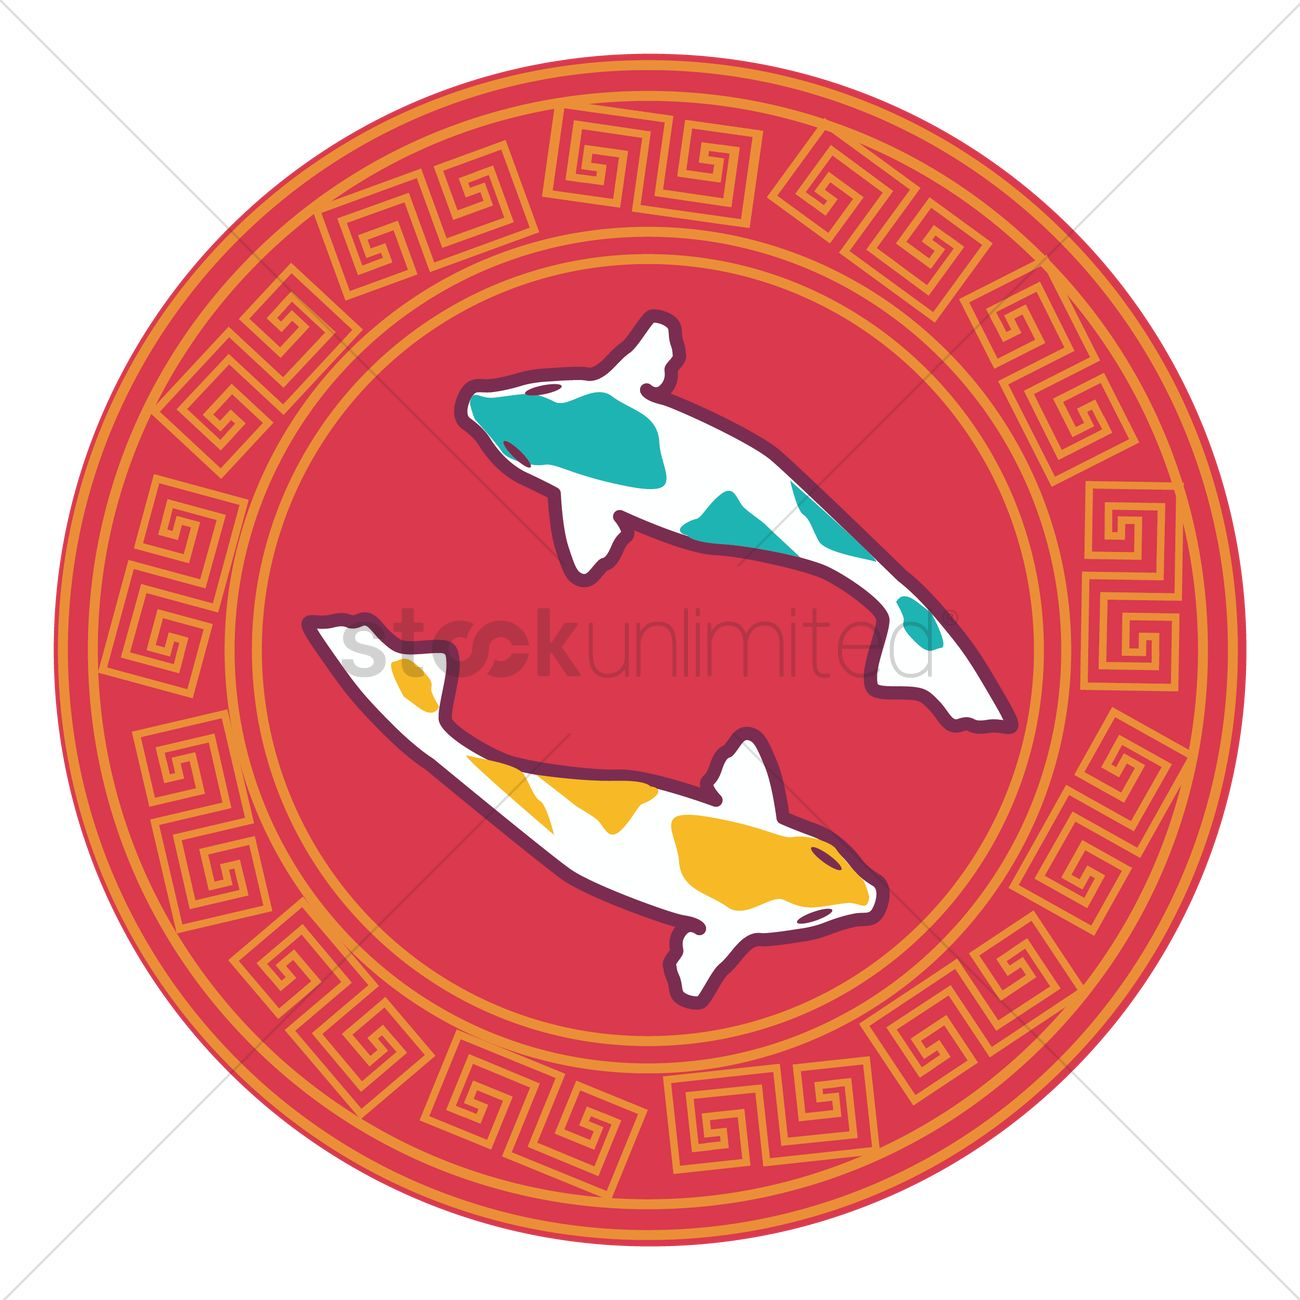 Chinese fish symbol vector image 1379728 stockunlimited for Www plenty of fish sign in